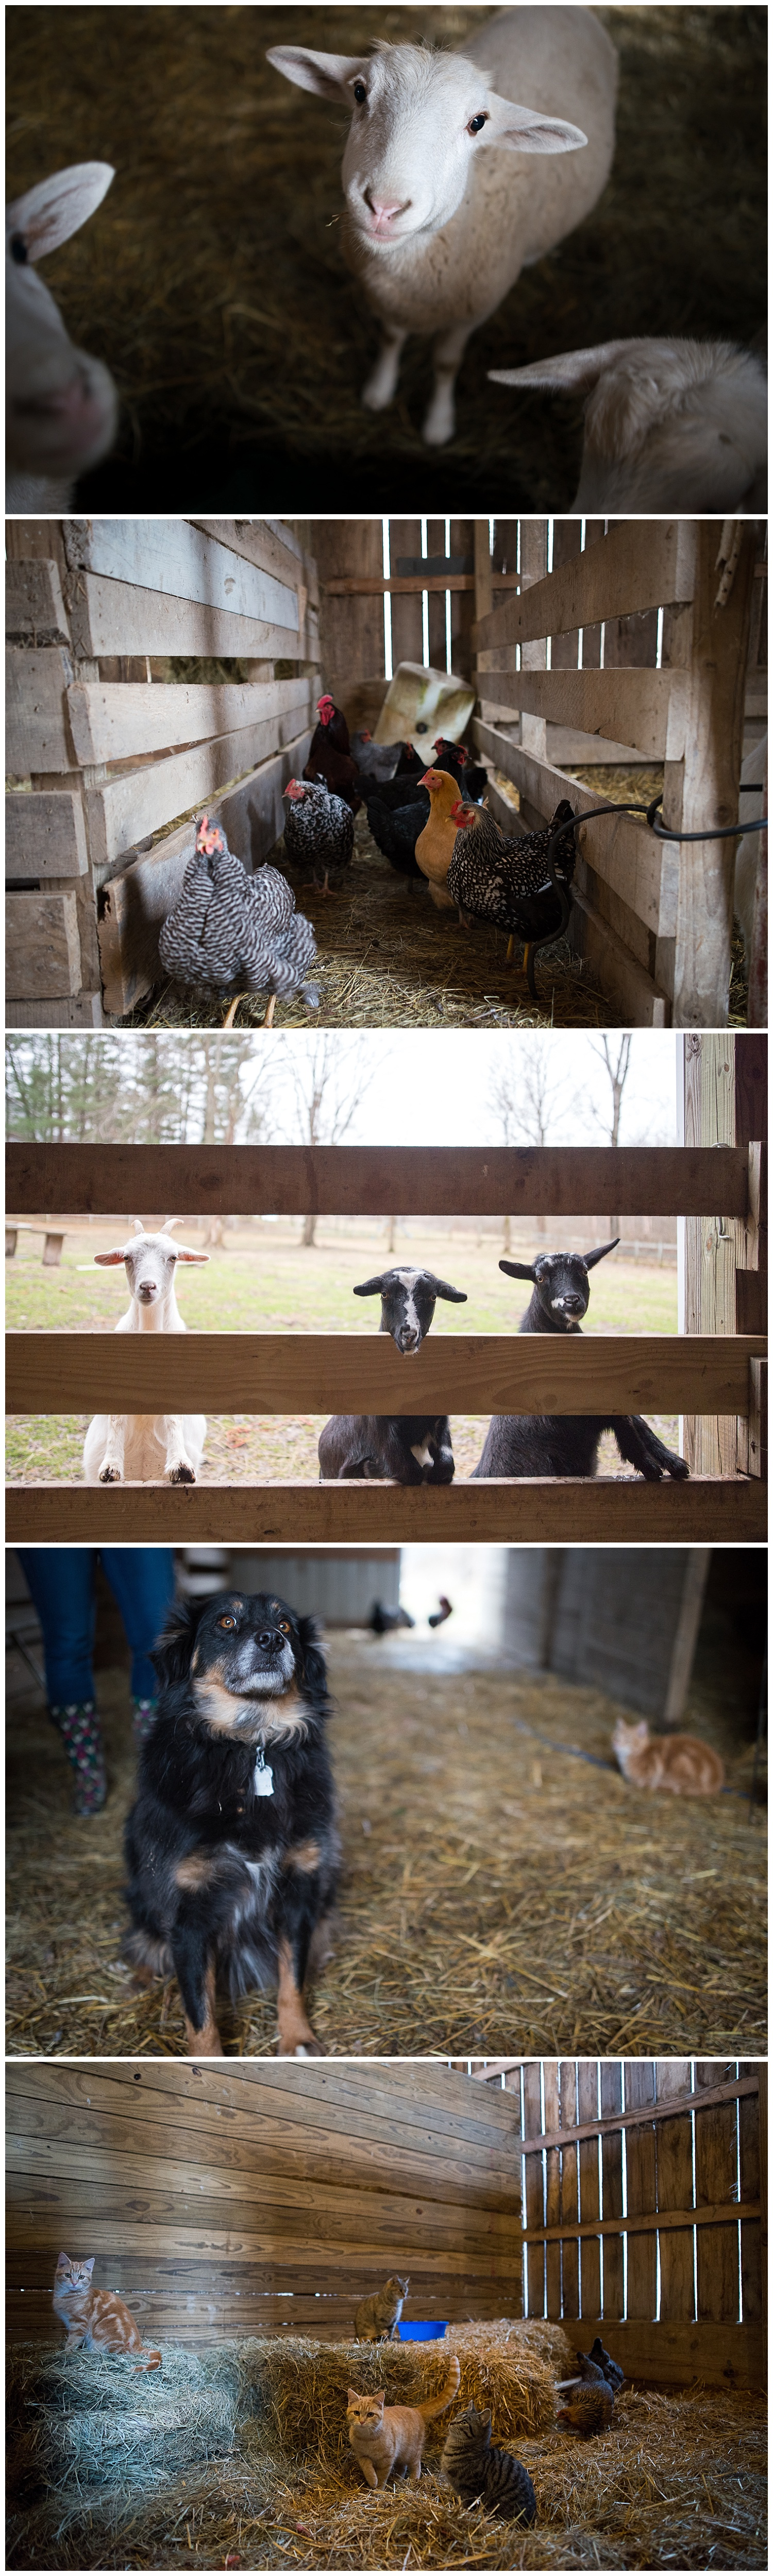 In the barn.  Two of the lambs will be going to slaughter soon, she's presently renting a stud goat and in addition to all you see here she raises pigs in the summer.  The chickens are for the eggs and the cats and Jeff the dog are to entertain the children.